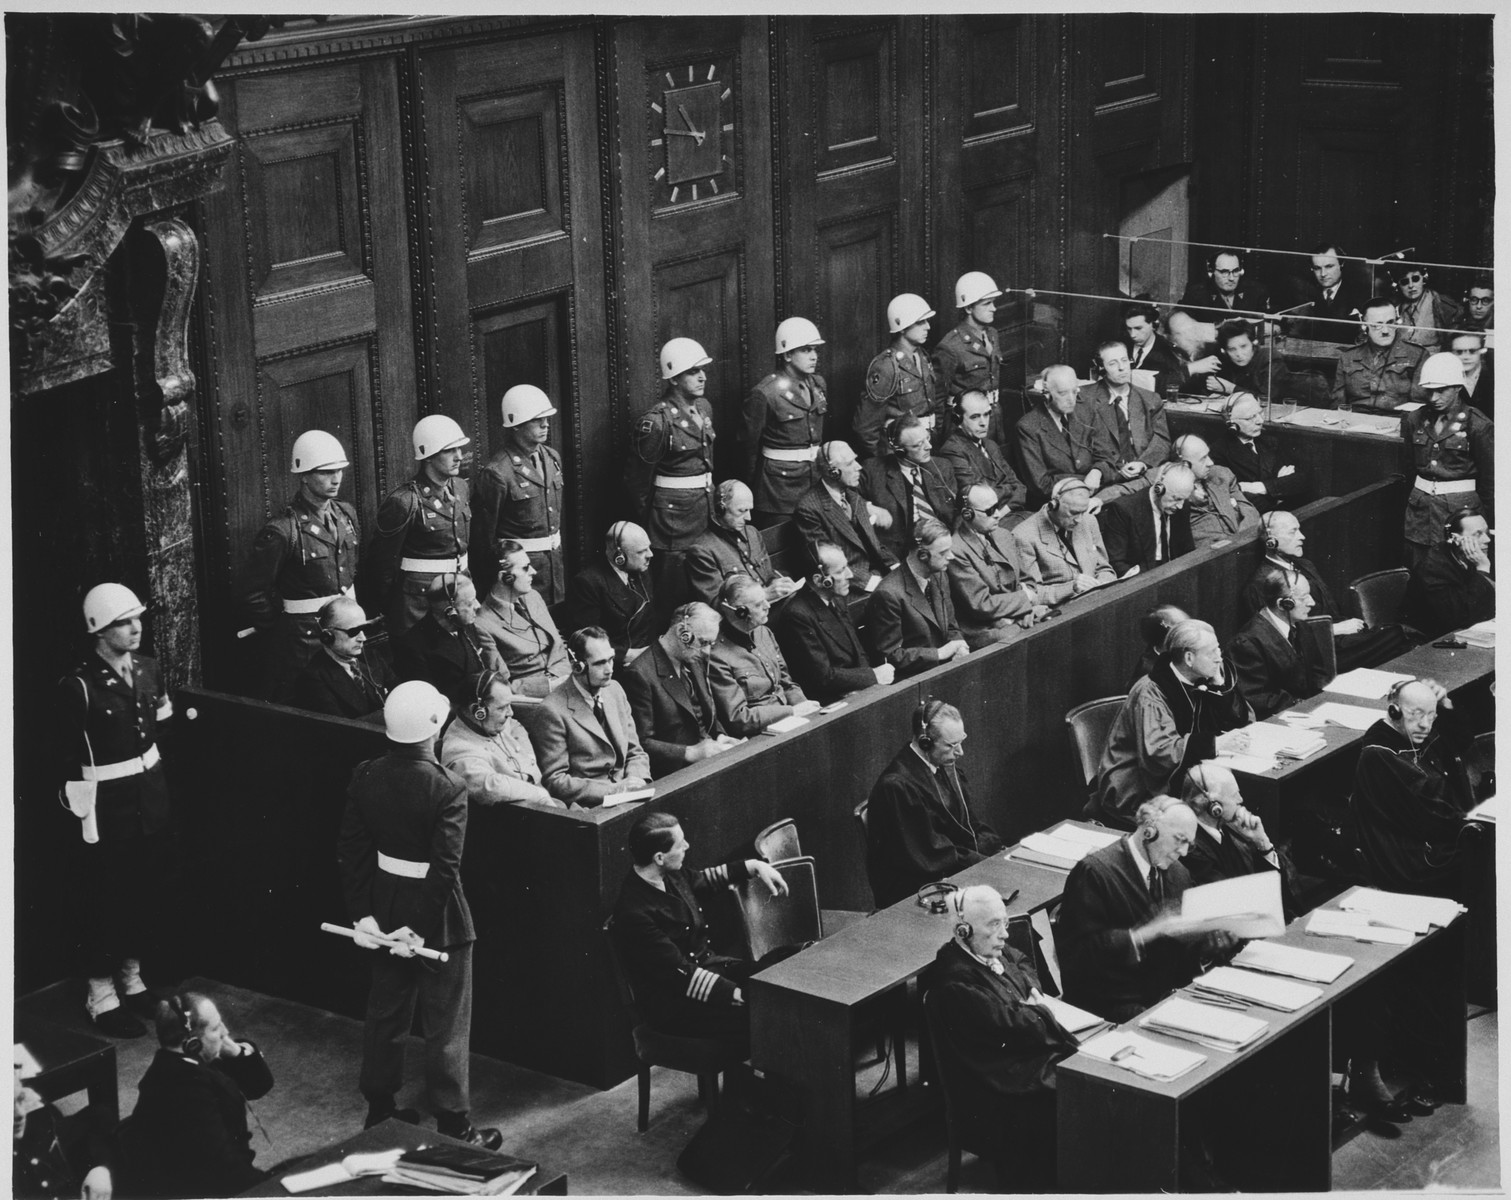 View of the defendants dock at the International Military Tribunal trial of war criminals at Nuremberg.  Pictured in the front row from left to right are: Goering, Hess, Ribbentrop, Keitel, Kaltenburnner, Rosenberg, Frank, Frick, Streicher, Funk and Schacht.  In the second row are Doenitz, Raeder, Schirach, Saukel, Jodl, Papen, Seyss-Inquart, Speer, von Neurath and Fritsche.  Sitting in front of them are their defense counsel.  The naval officer sitting among the lawyers is Dr. Otto Kranzbuehler, the defense counsel for Karl Doenitz, who was given a temporary release from the POW camp when Doenitz requested him to be his lawyer.  At the bottom left corner is General R. A. Rudenko, the chief Soviet prosecutor.